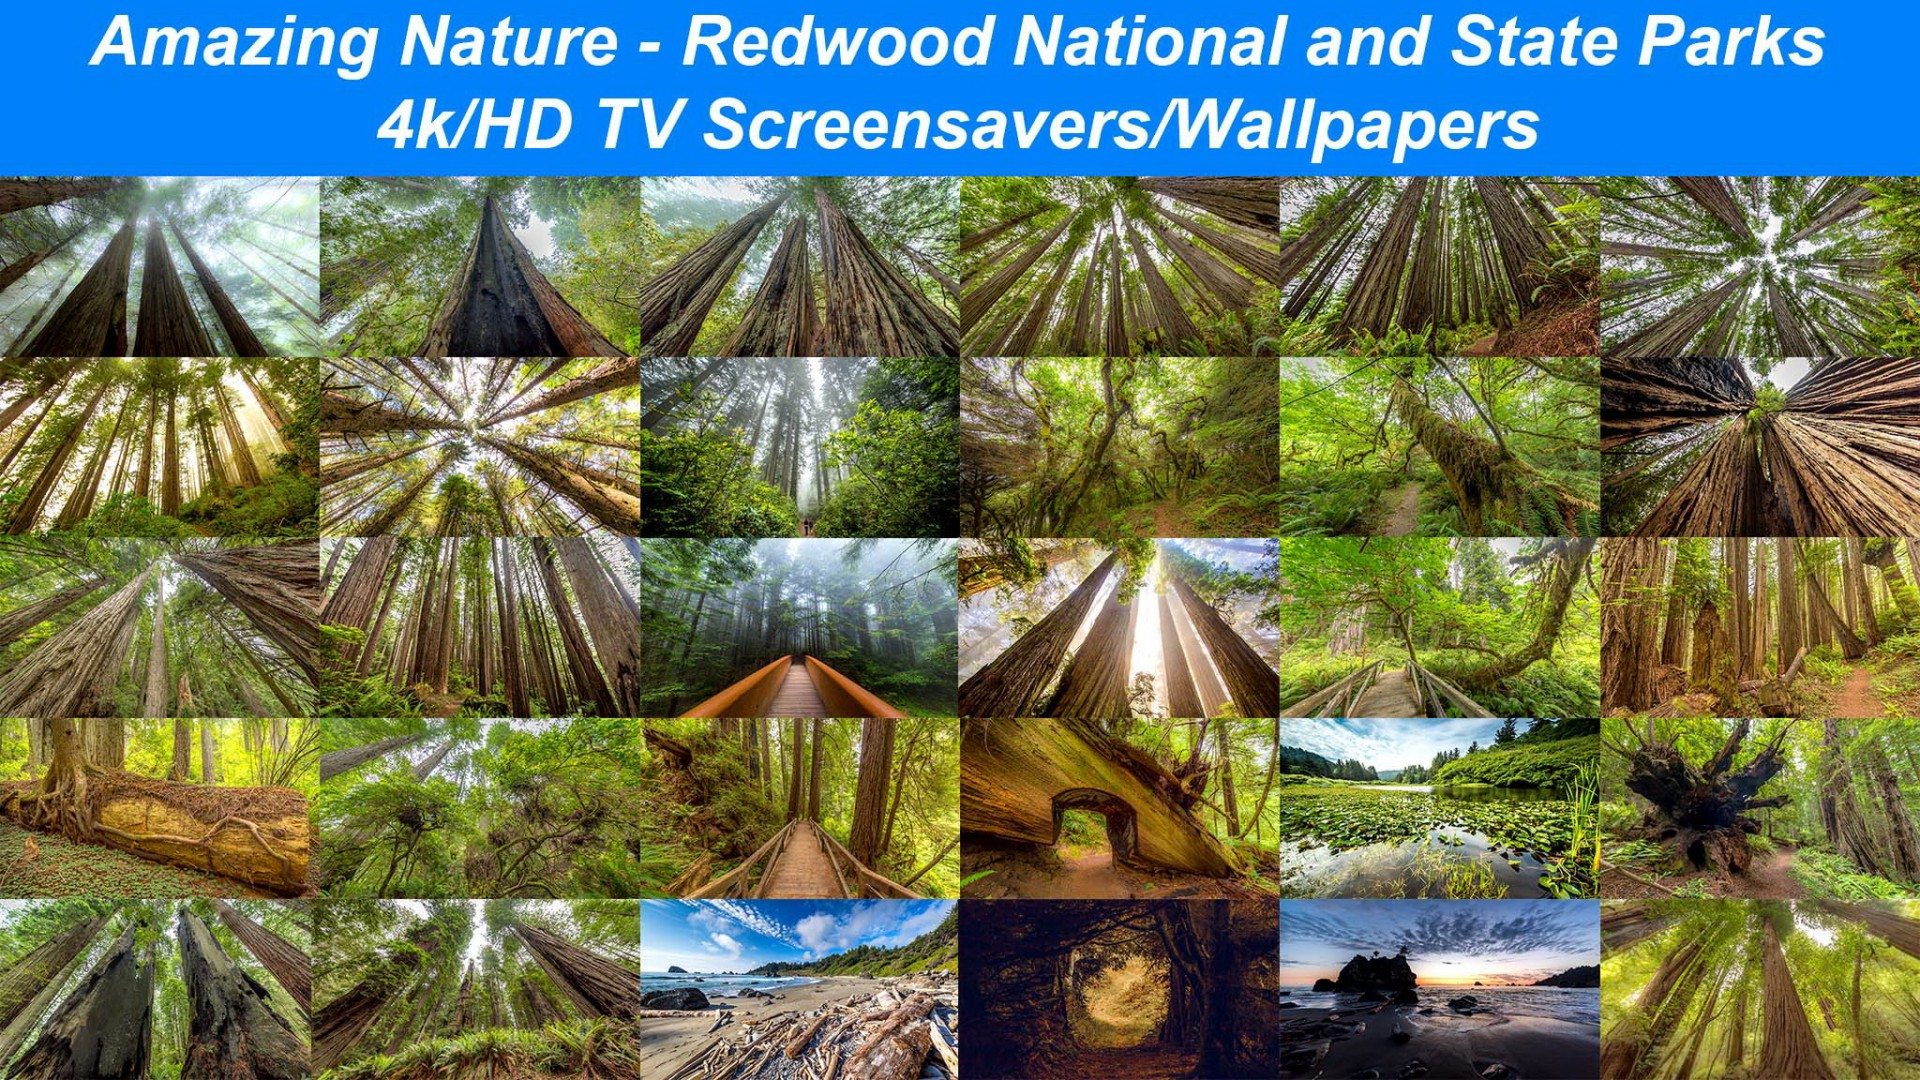 Amazing Nature: Redwood National and State Parks